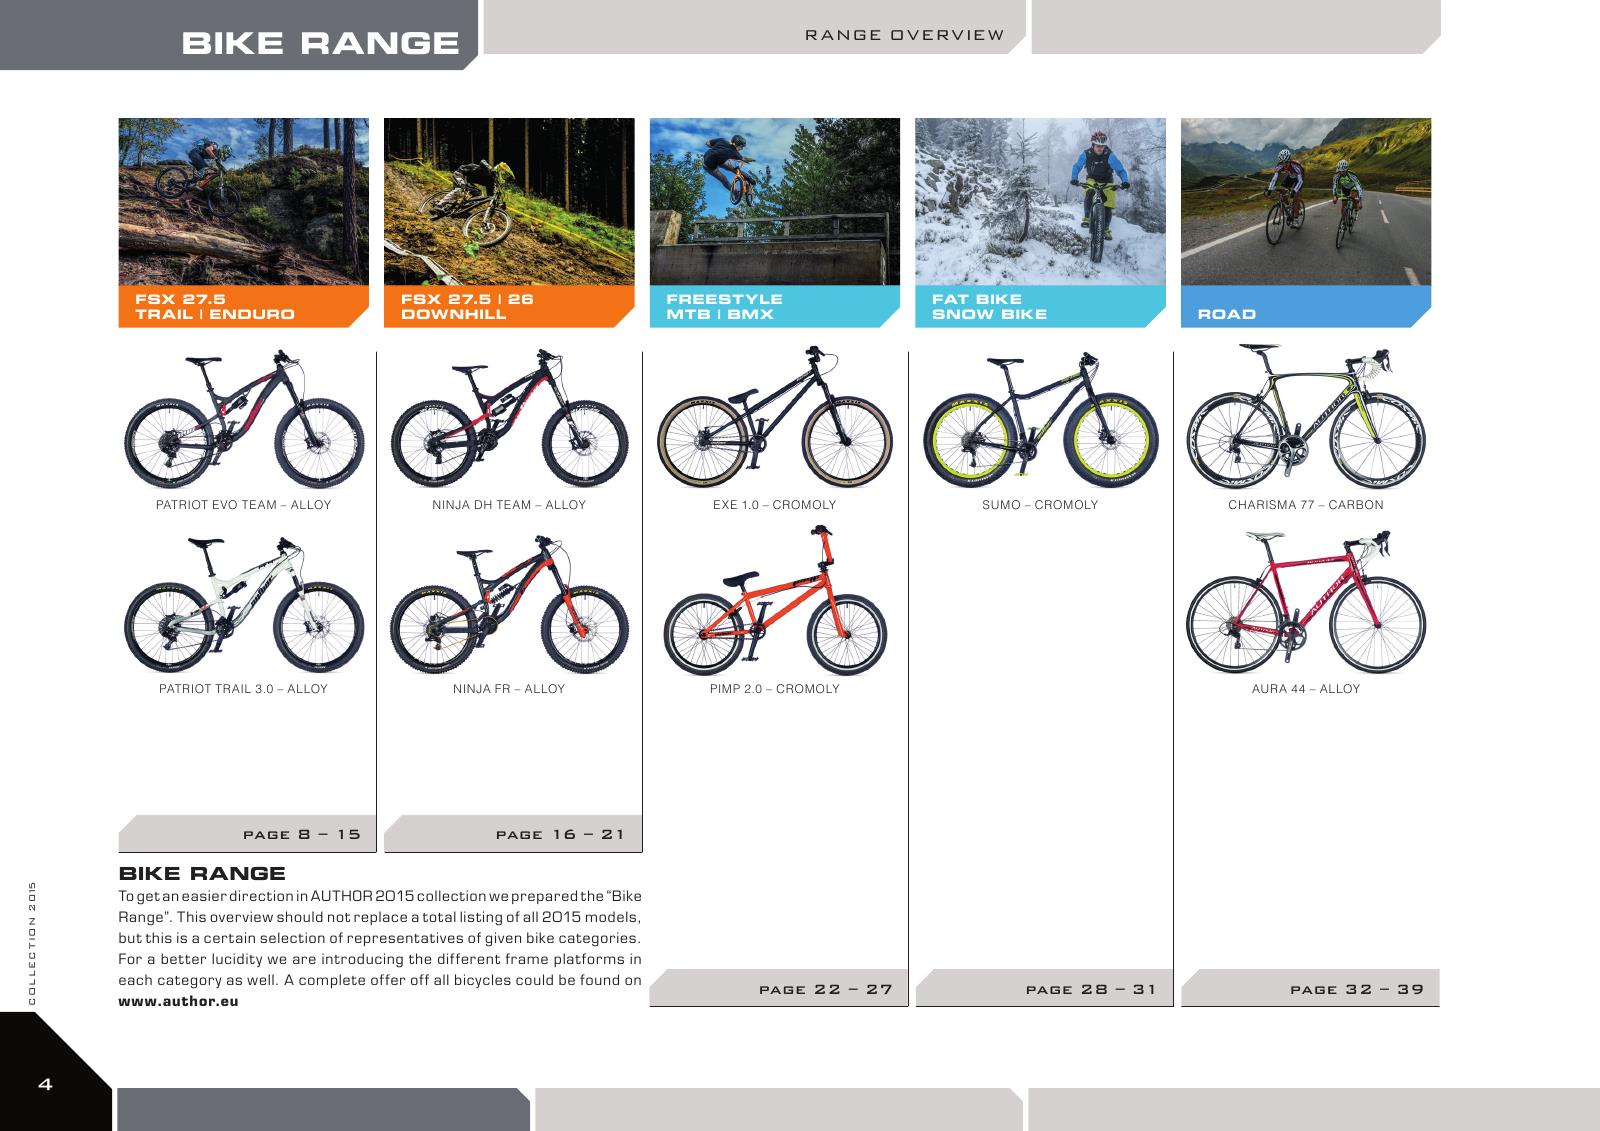 Bike range - range overview